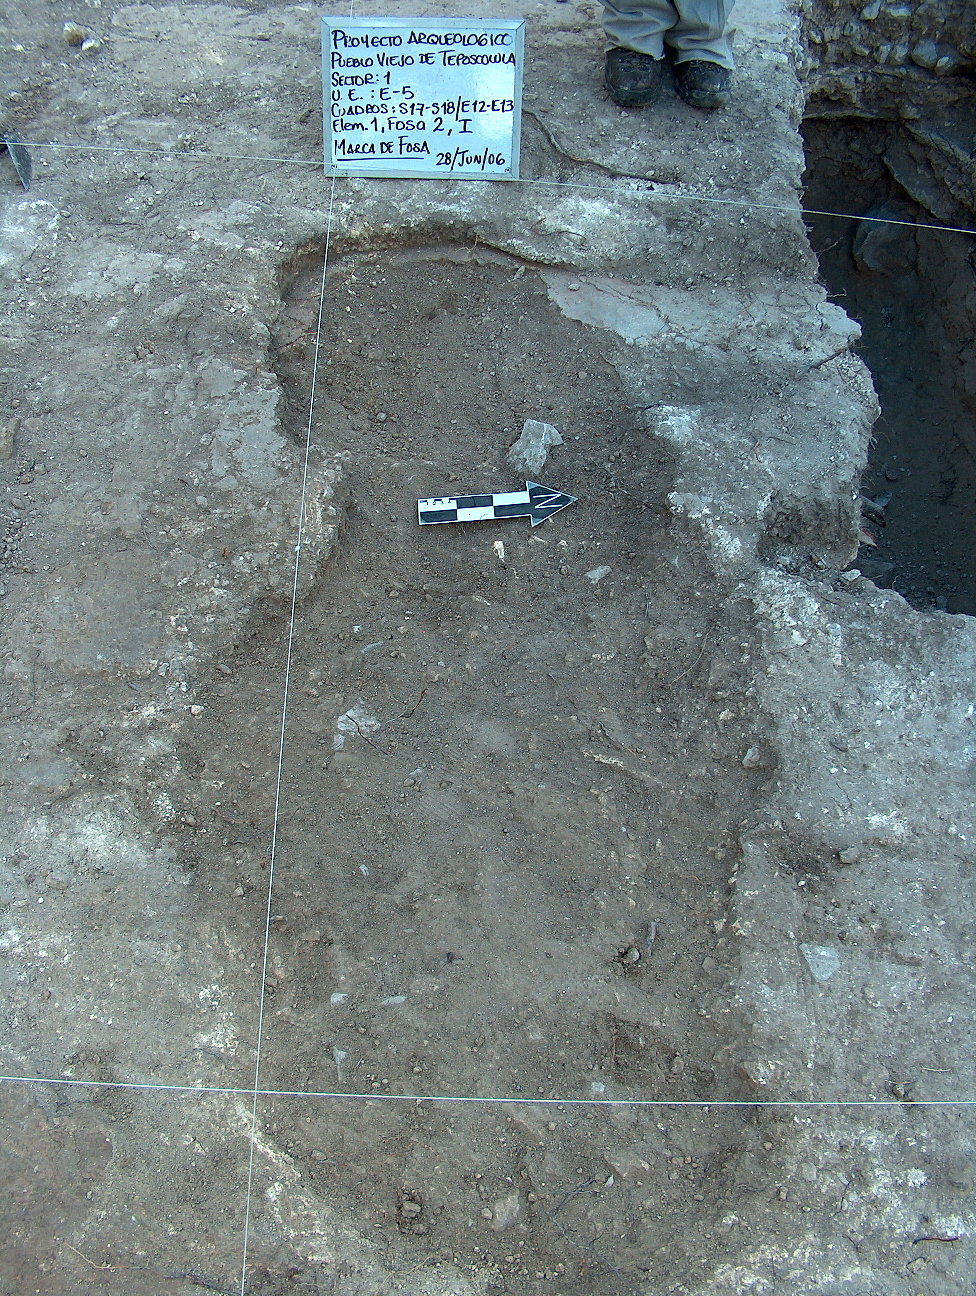 A mass burial in the Teposcolula-Yucundaa Grand Plaza, shown prior to excavation. It contained the remains of three individuals, all of whom tested positive for <em>S. enterica</em>. A second grave, visible at the top right, contained an additional two individuals who tested positive for <em>S. enterica</em>. Mass graves in the Grand Plaza were densely spaced and roughly cut into the plaster floor. The floor was never repaired, indicating the haste with which the site was abandoned shortly after the epidemic.